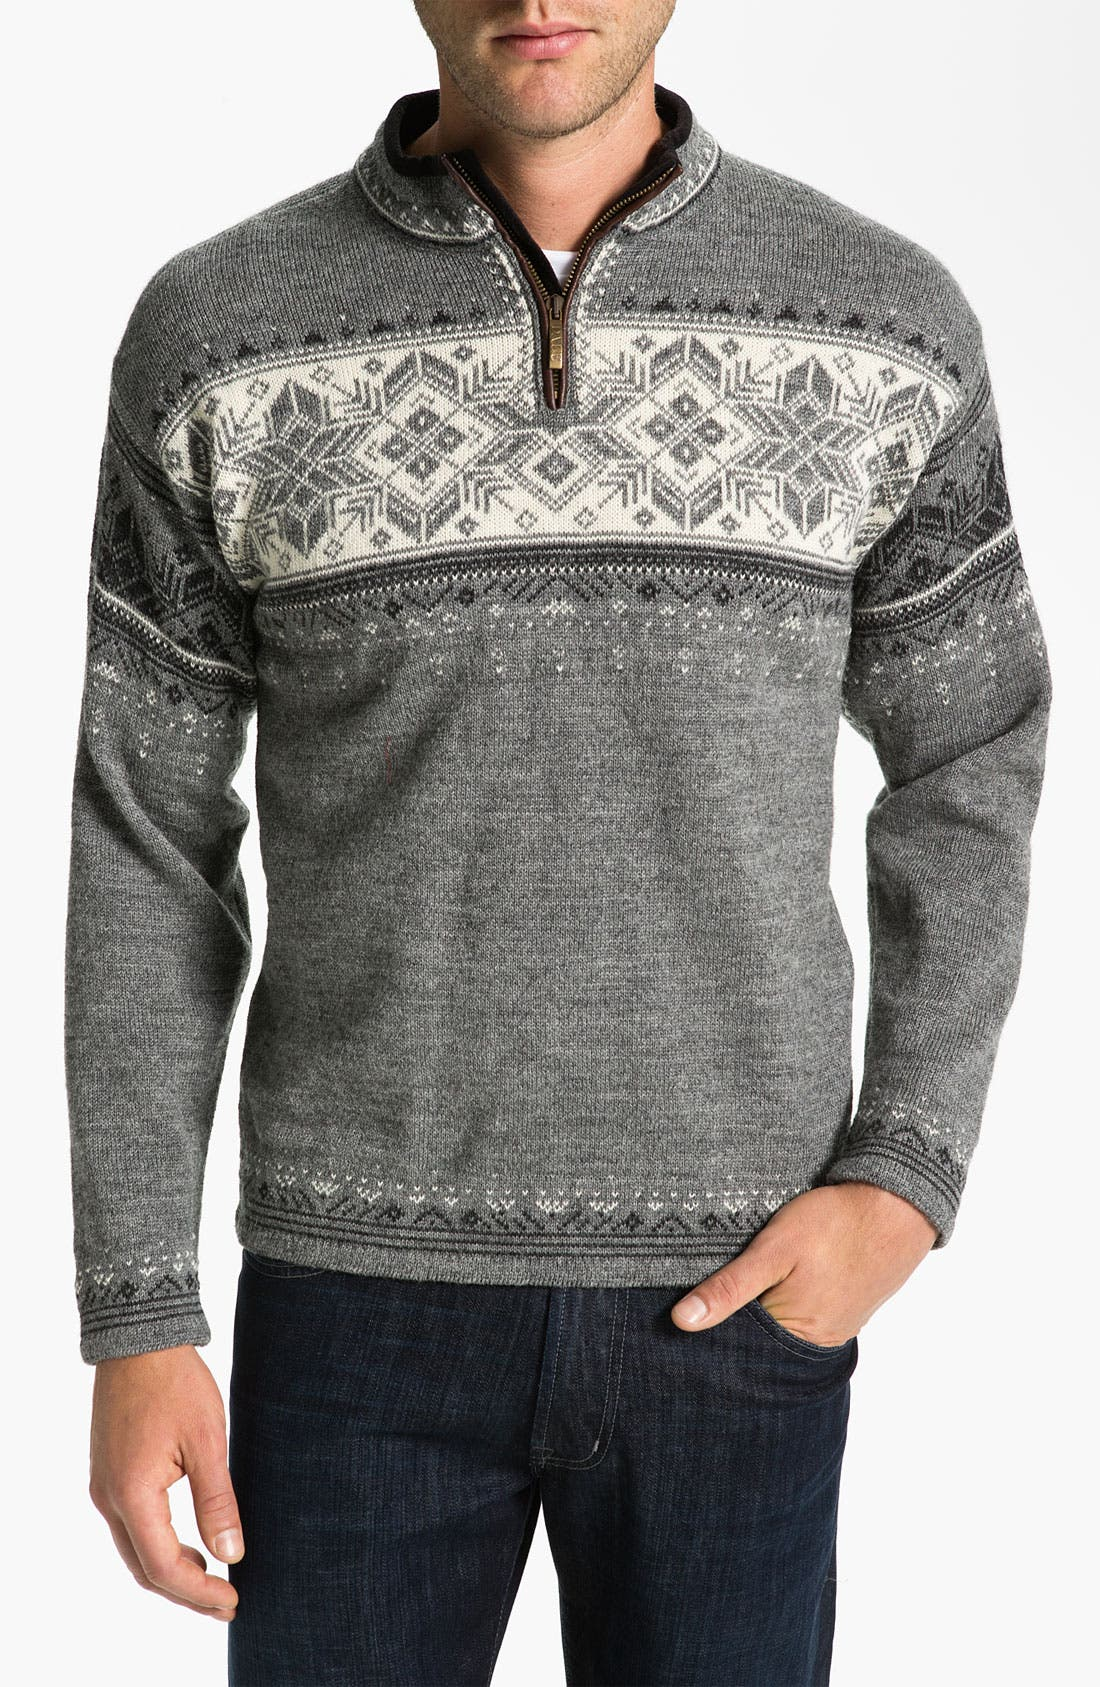 Main Image - Dale of Norway 'Blyfjell' Quarter Zip Wool Sweater